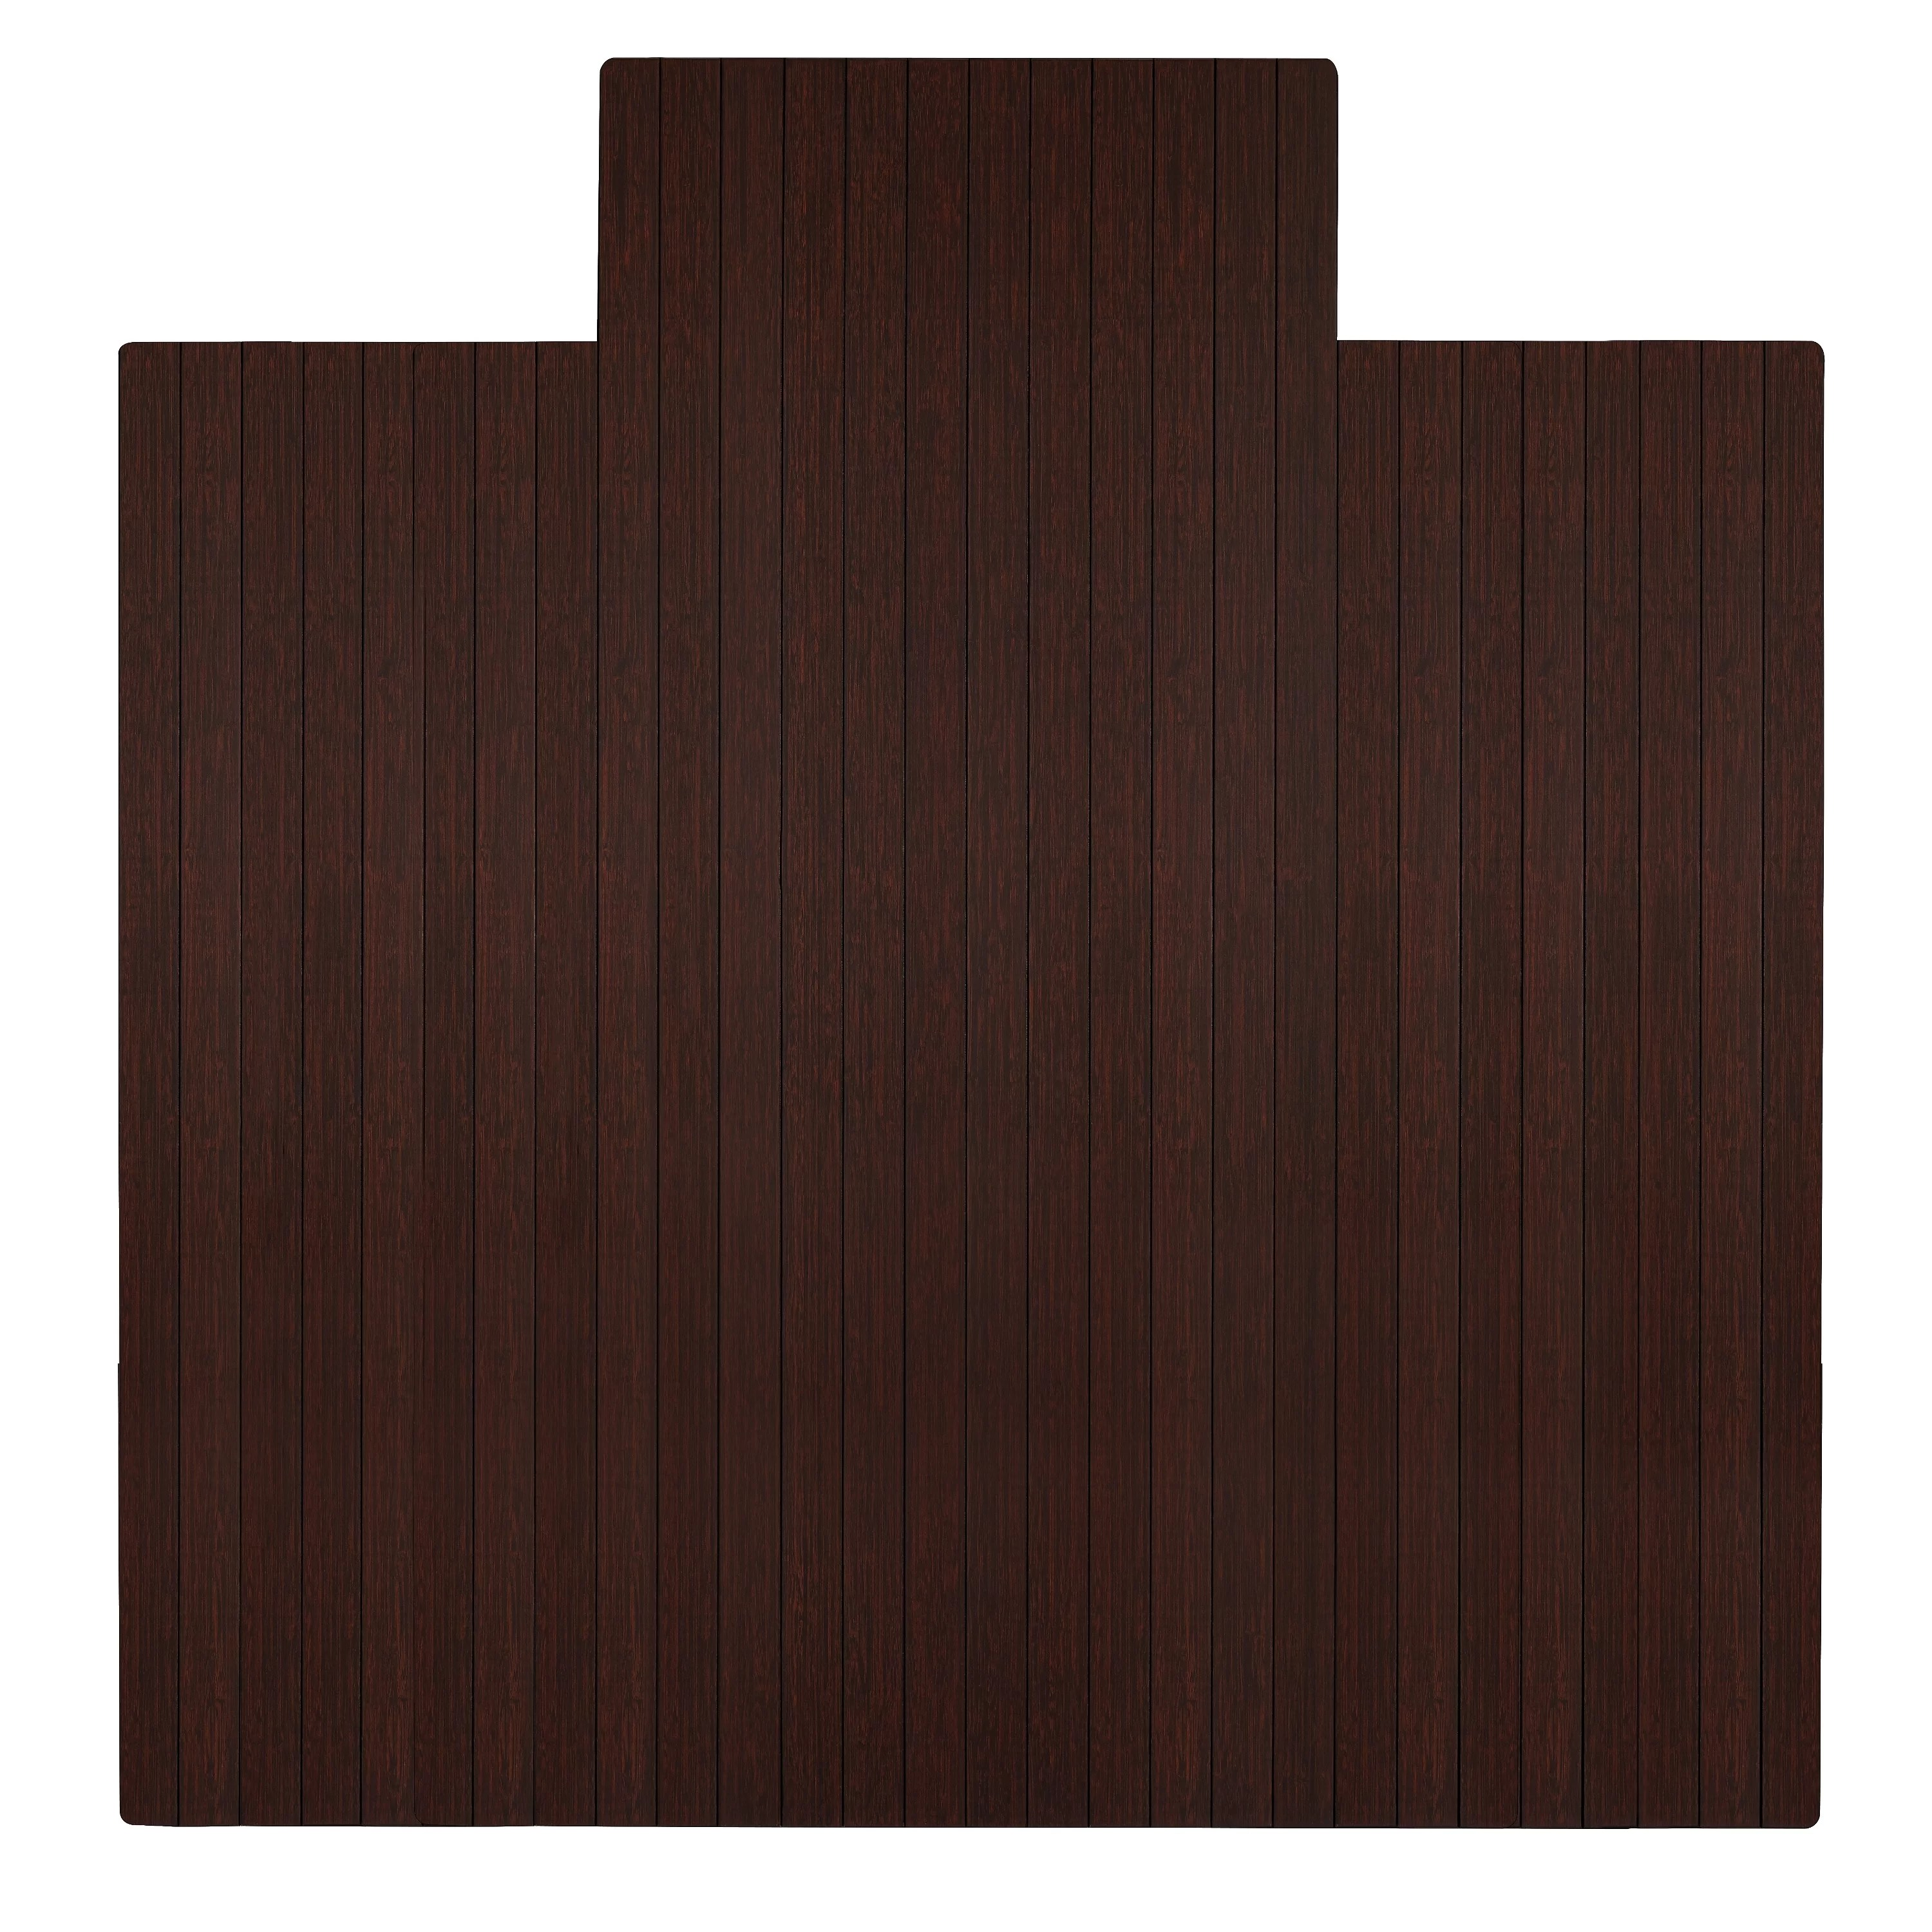 office max hardwood floor chair mat blue bay rum cream recipes wildon home  low pile and bamboo